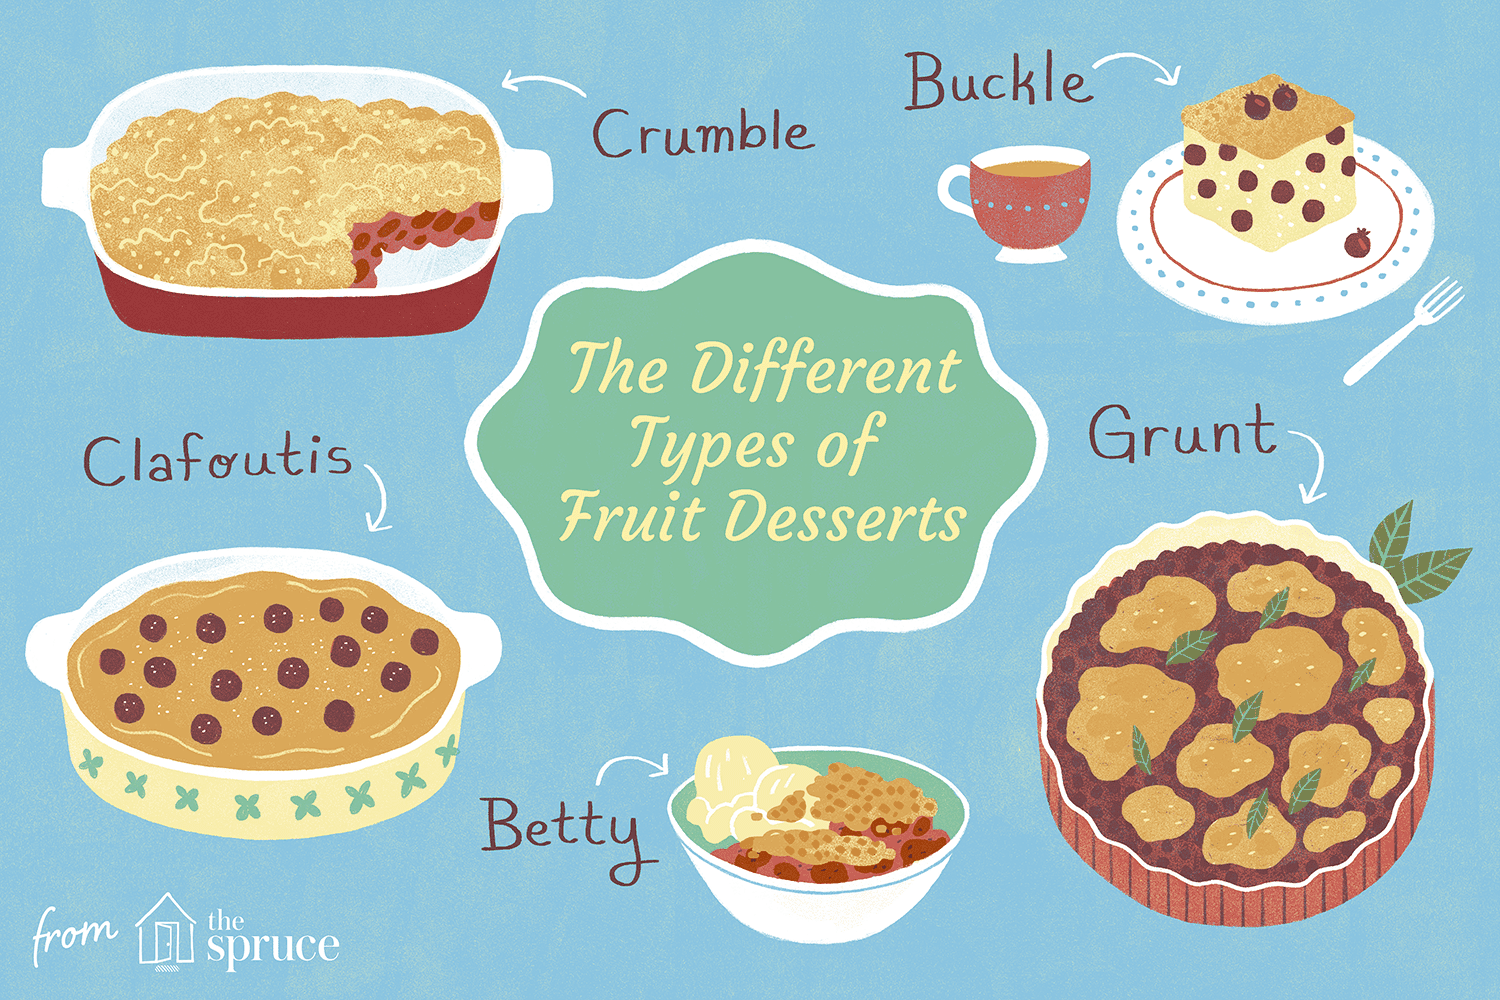 the different types of fruit desserts